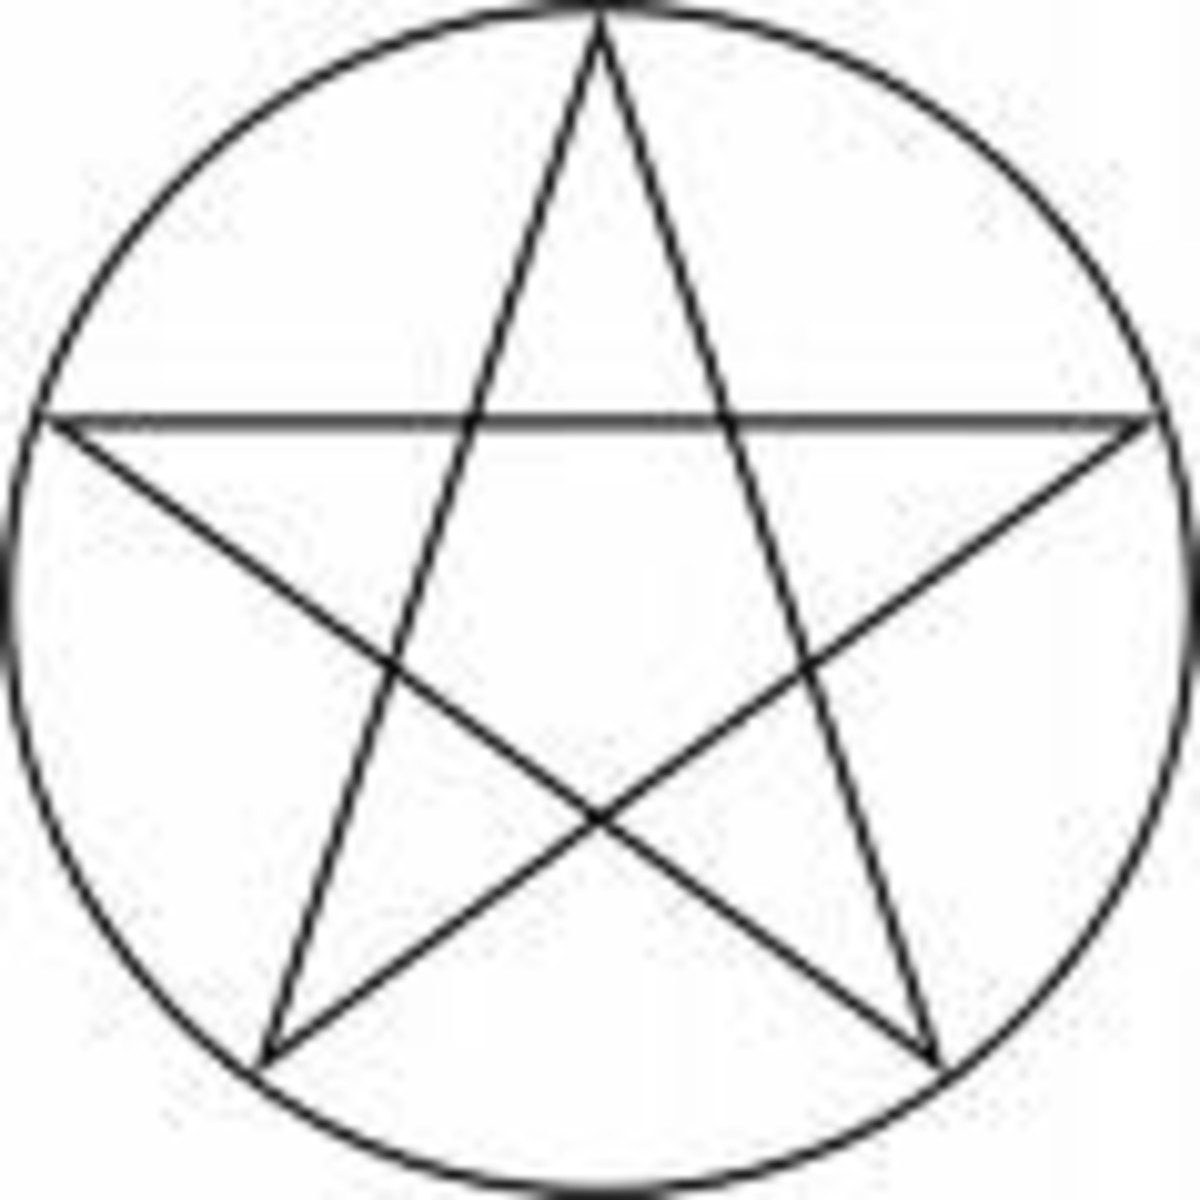 Pentacle - used to represent the elements, earth, air, fire, water and spirit and their interconnectivity.